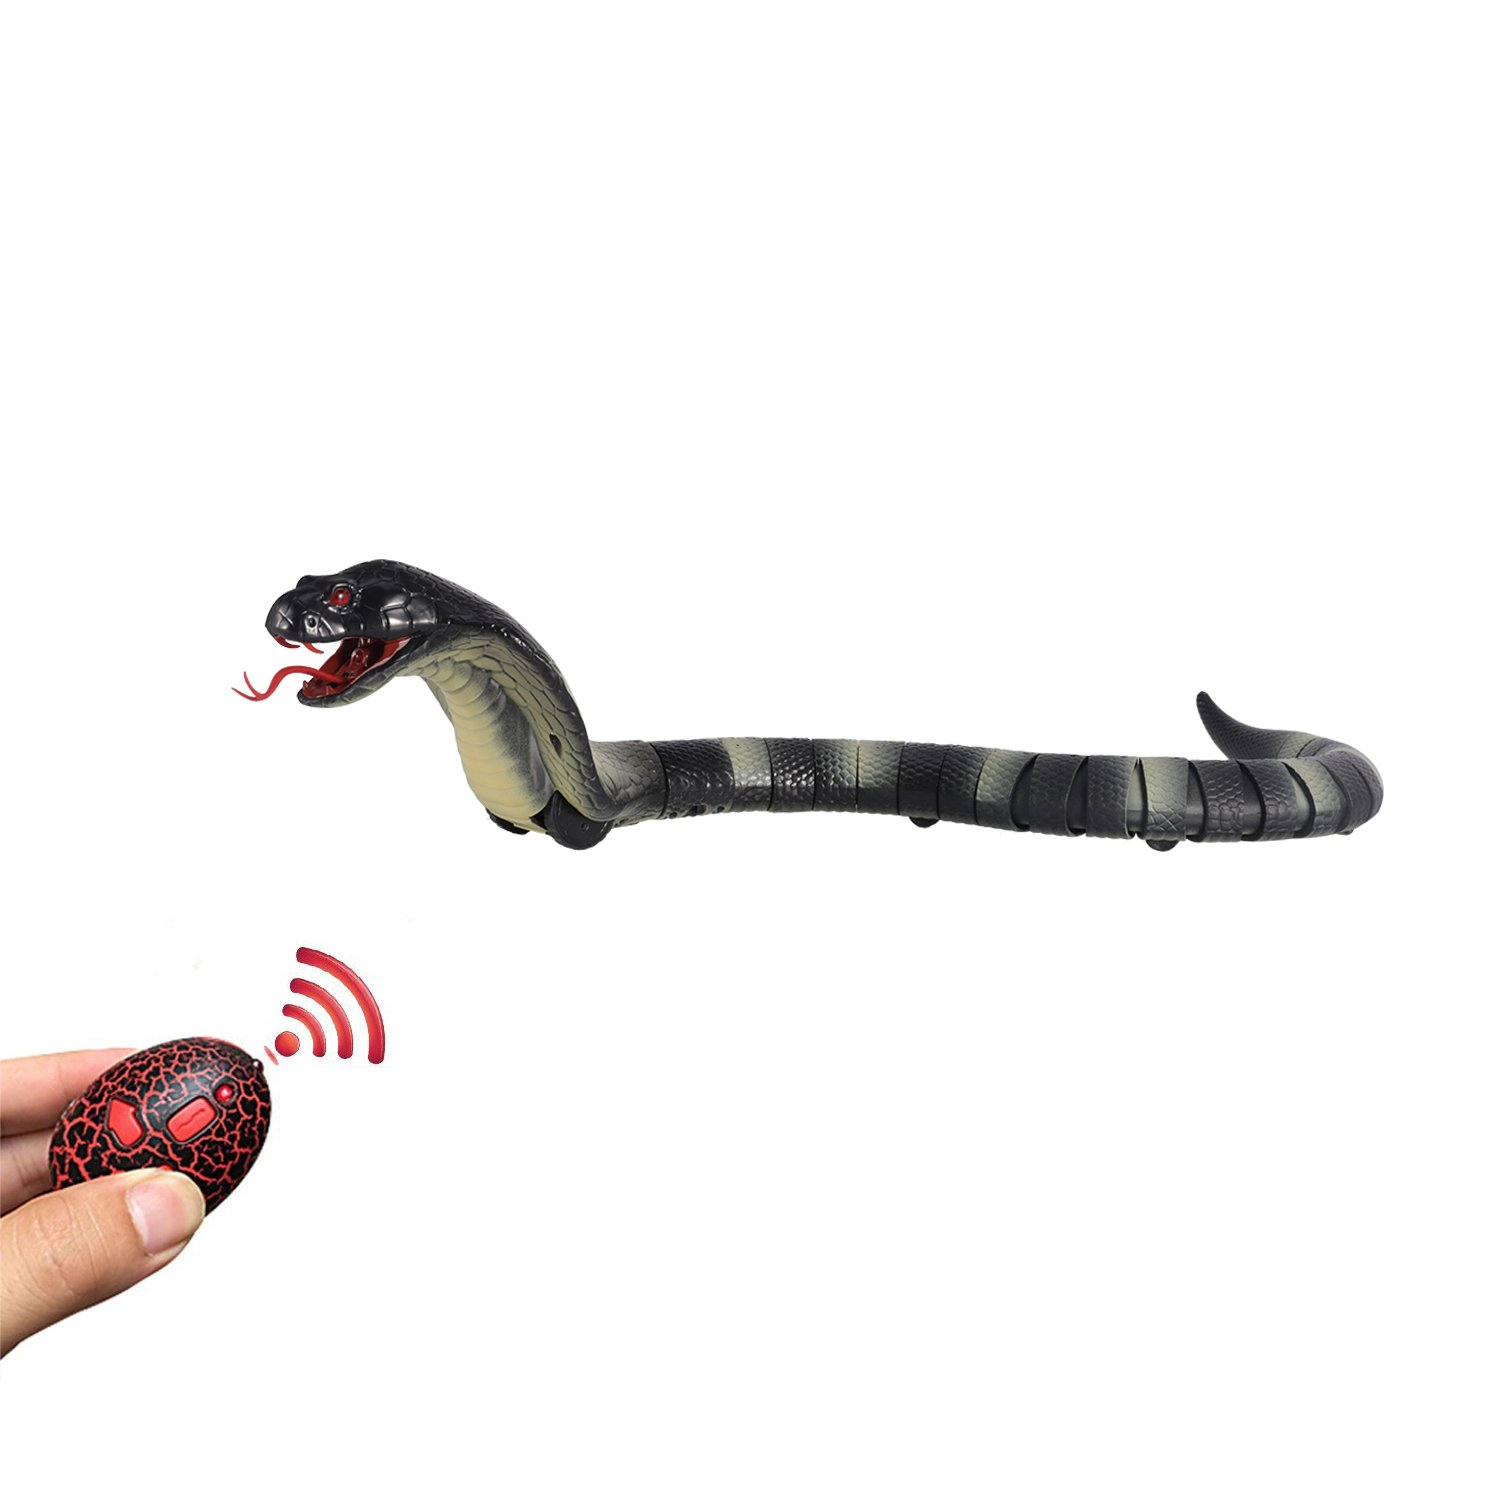 Rely2016 Remote Control Snake Rechargeable Simulation RC Snake Toy 17 Long Fake Cobra Animal Trick Terrifying Mischief Toy for Kids Children Blue